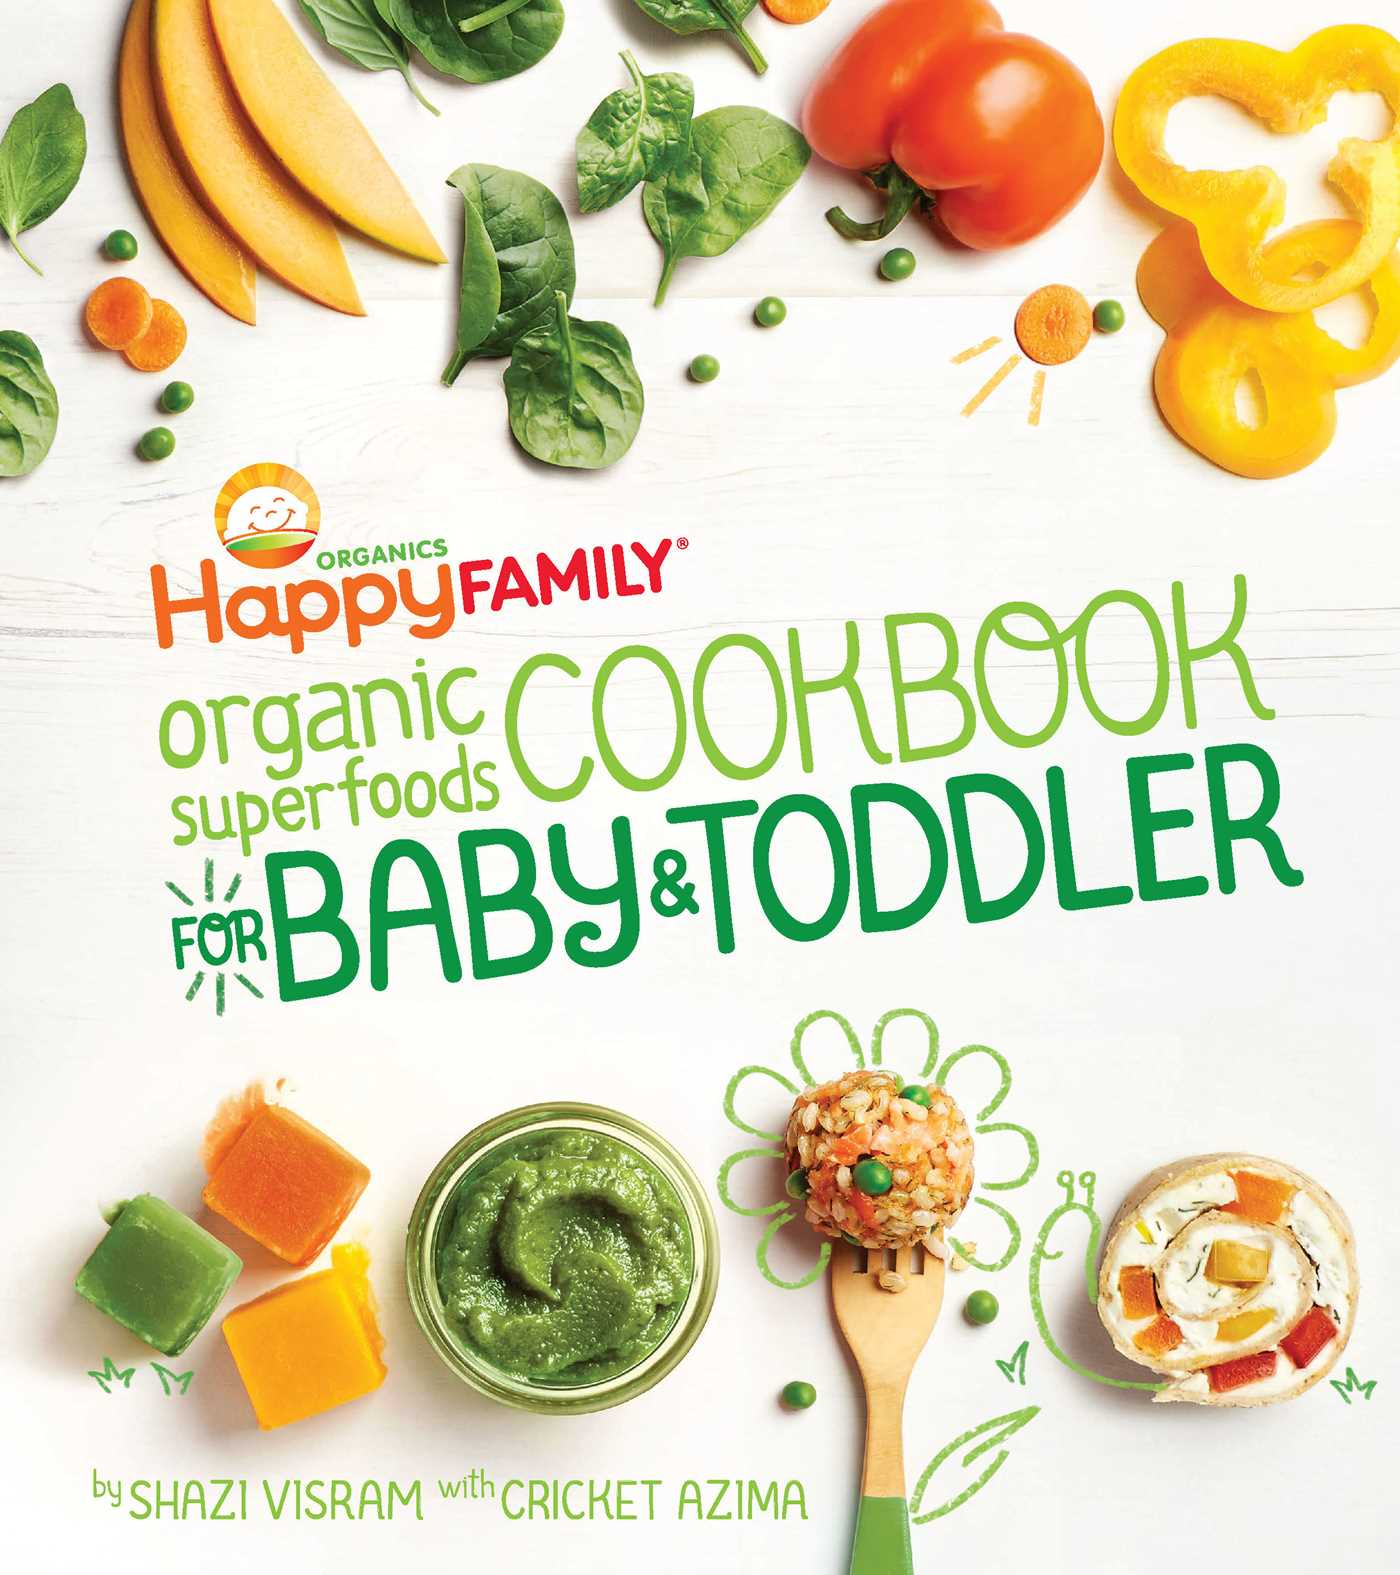 The happy family organic superfoods cookbook for baby toddler 9781681880495 hr